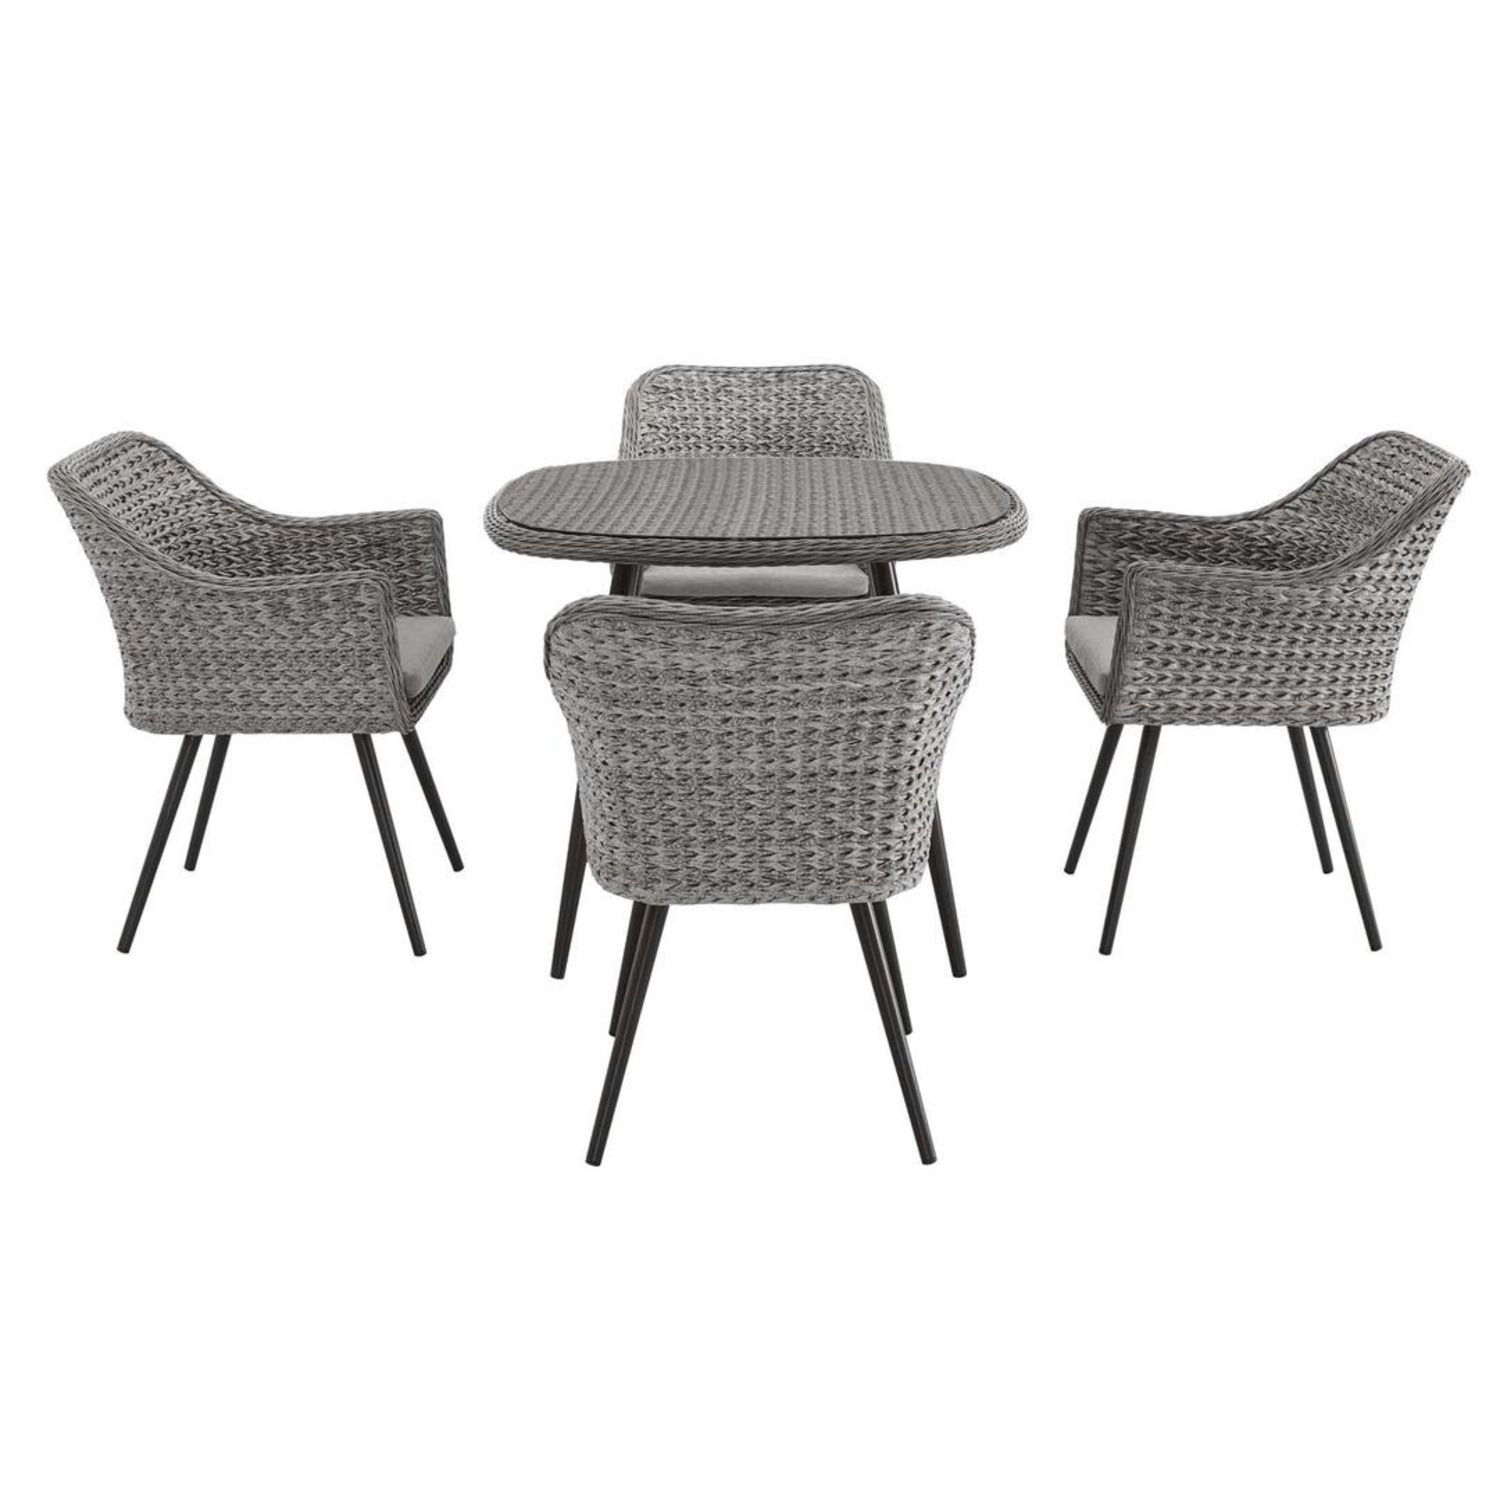 Modern 5-Piece Dining Set In Gray-On-Gray Tone - image-2